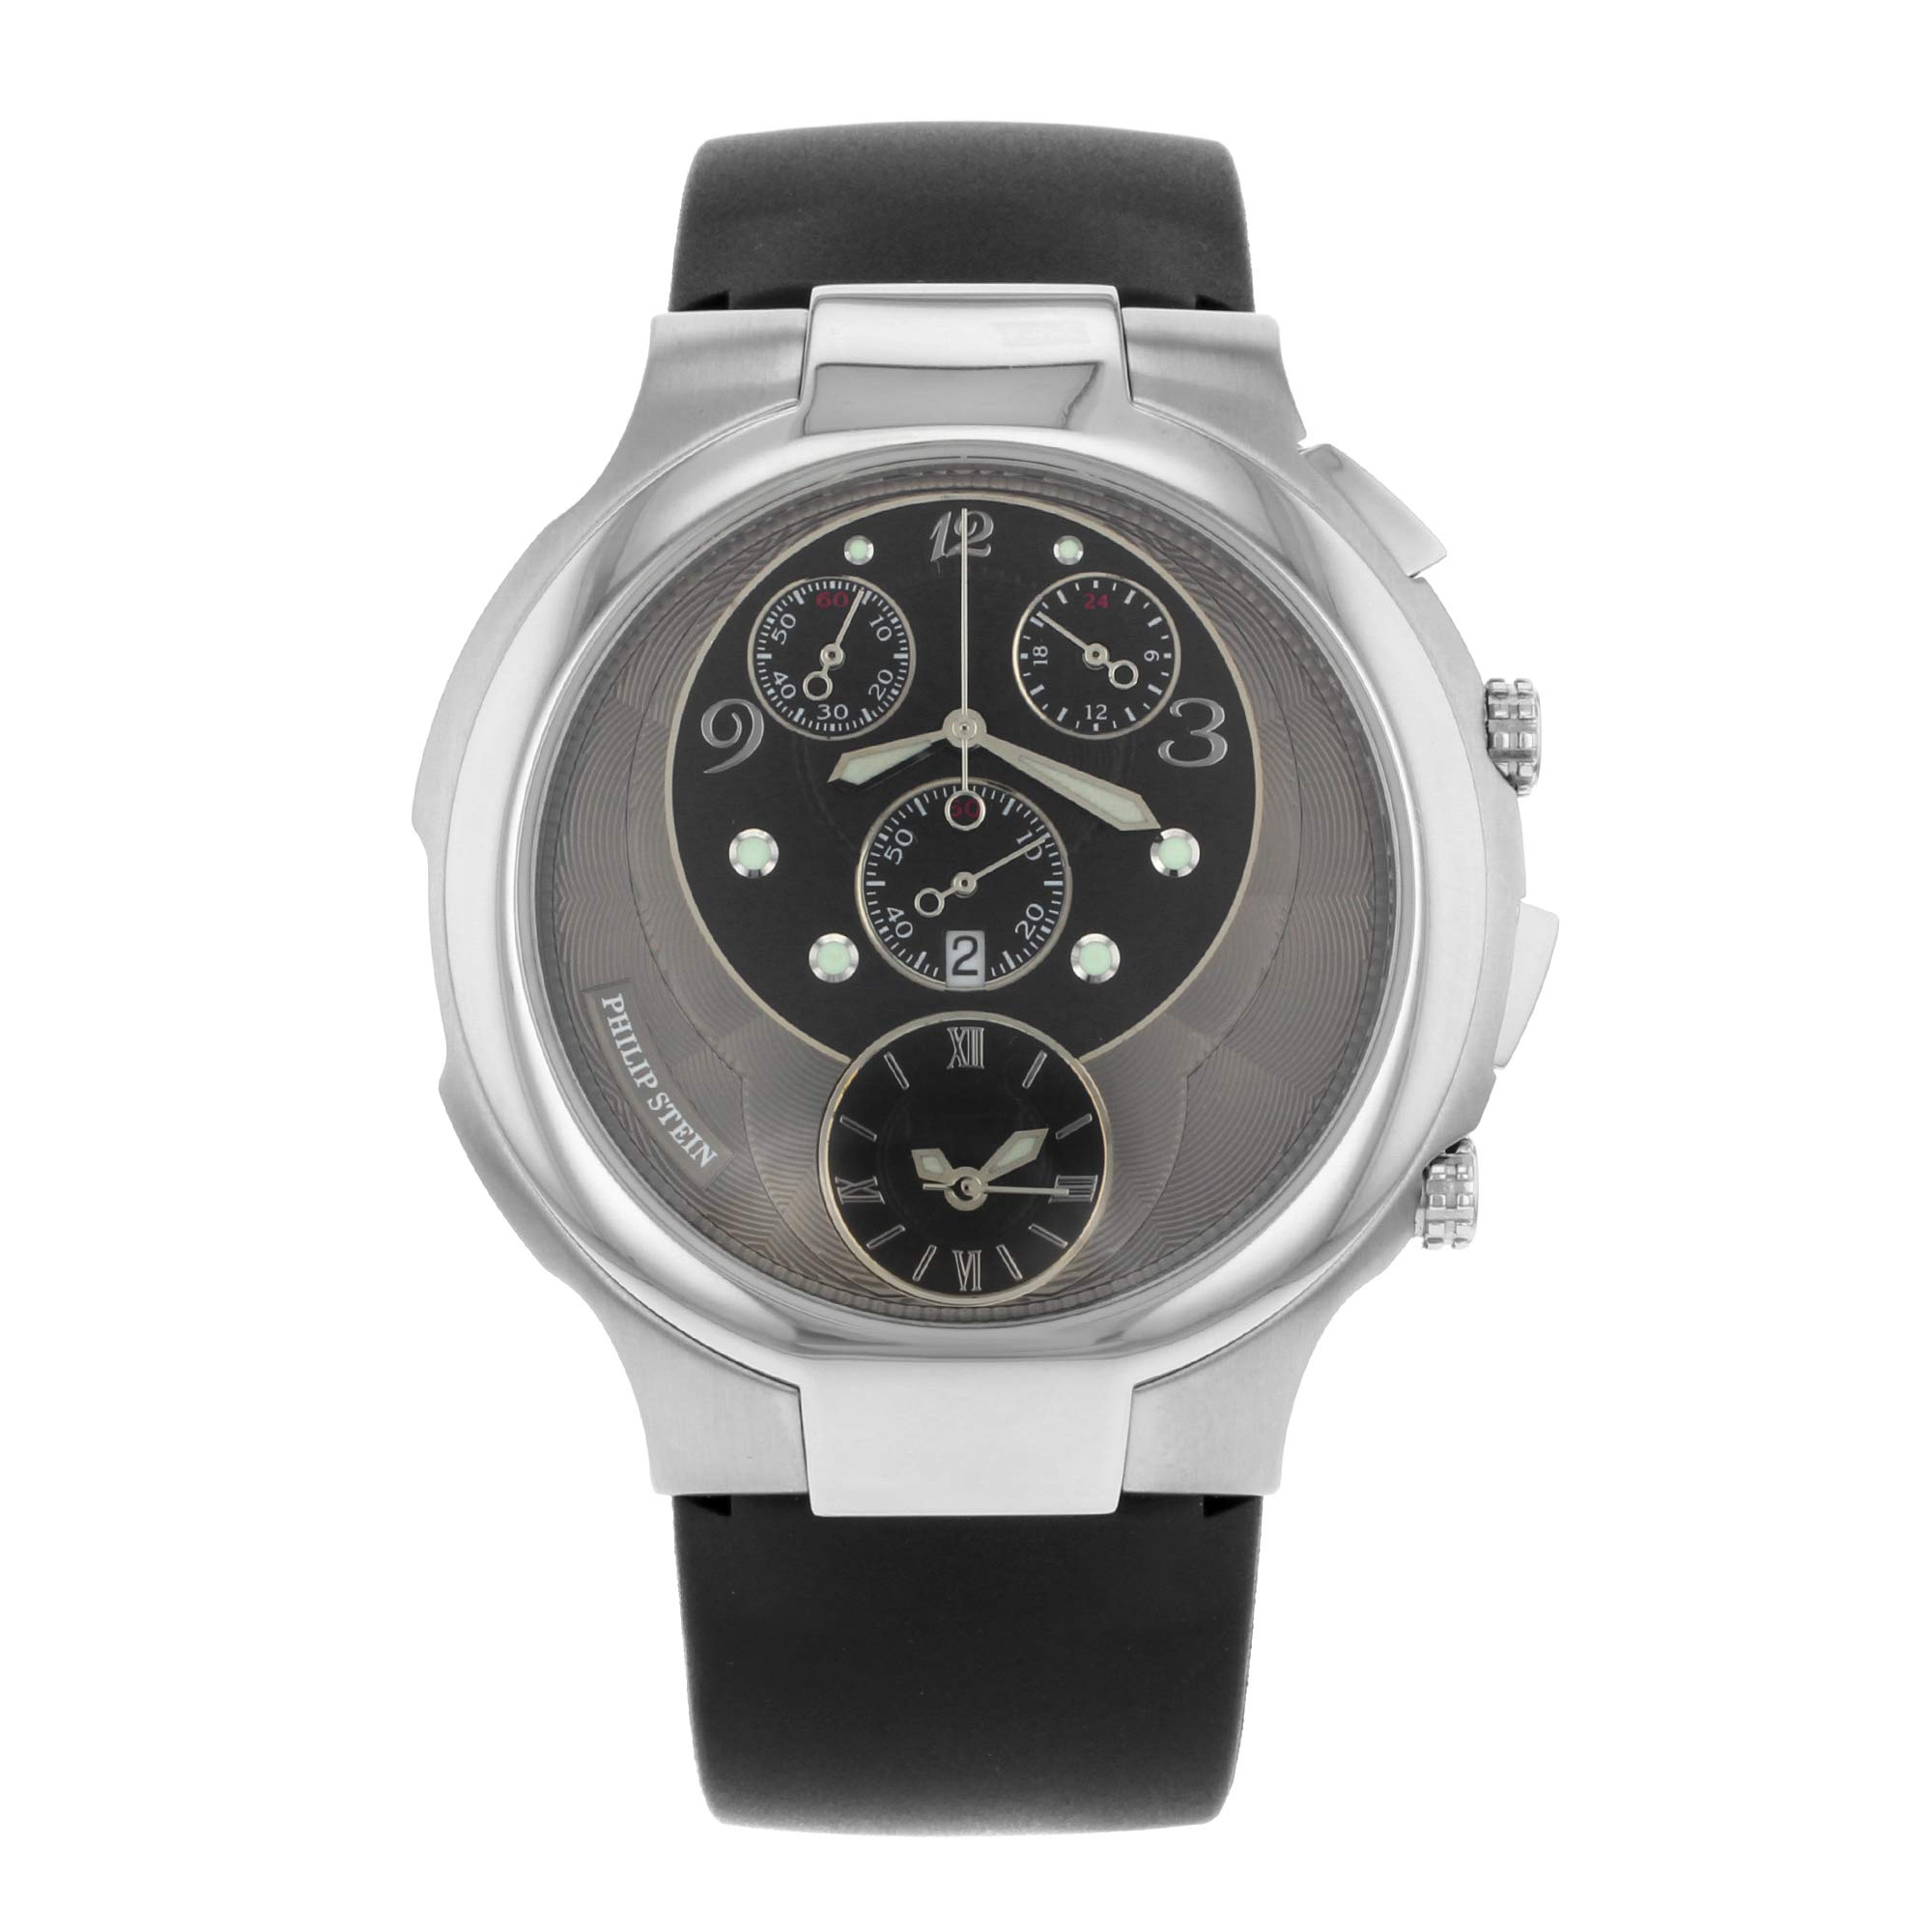 Philip Stein Chrono Analog-Quartz Male Watch 9-CRB3-CB (Certified Pre-Owned) by Philip Stein (Image #1)